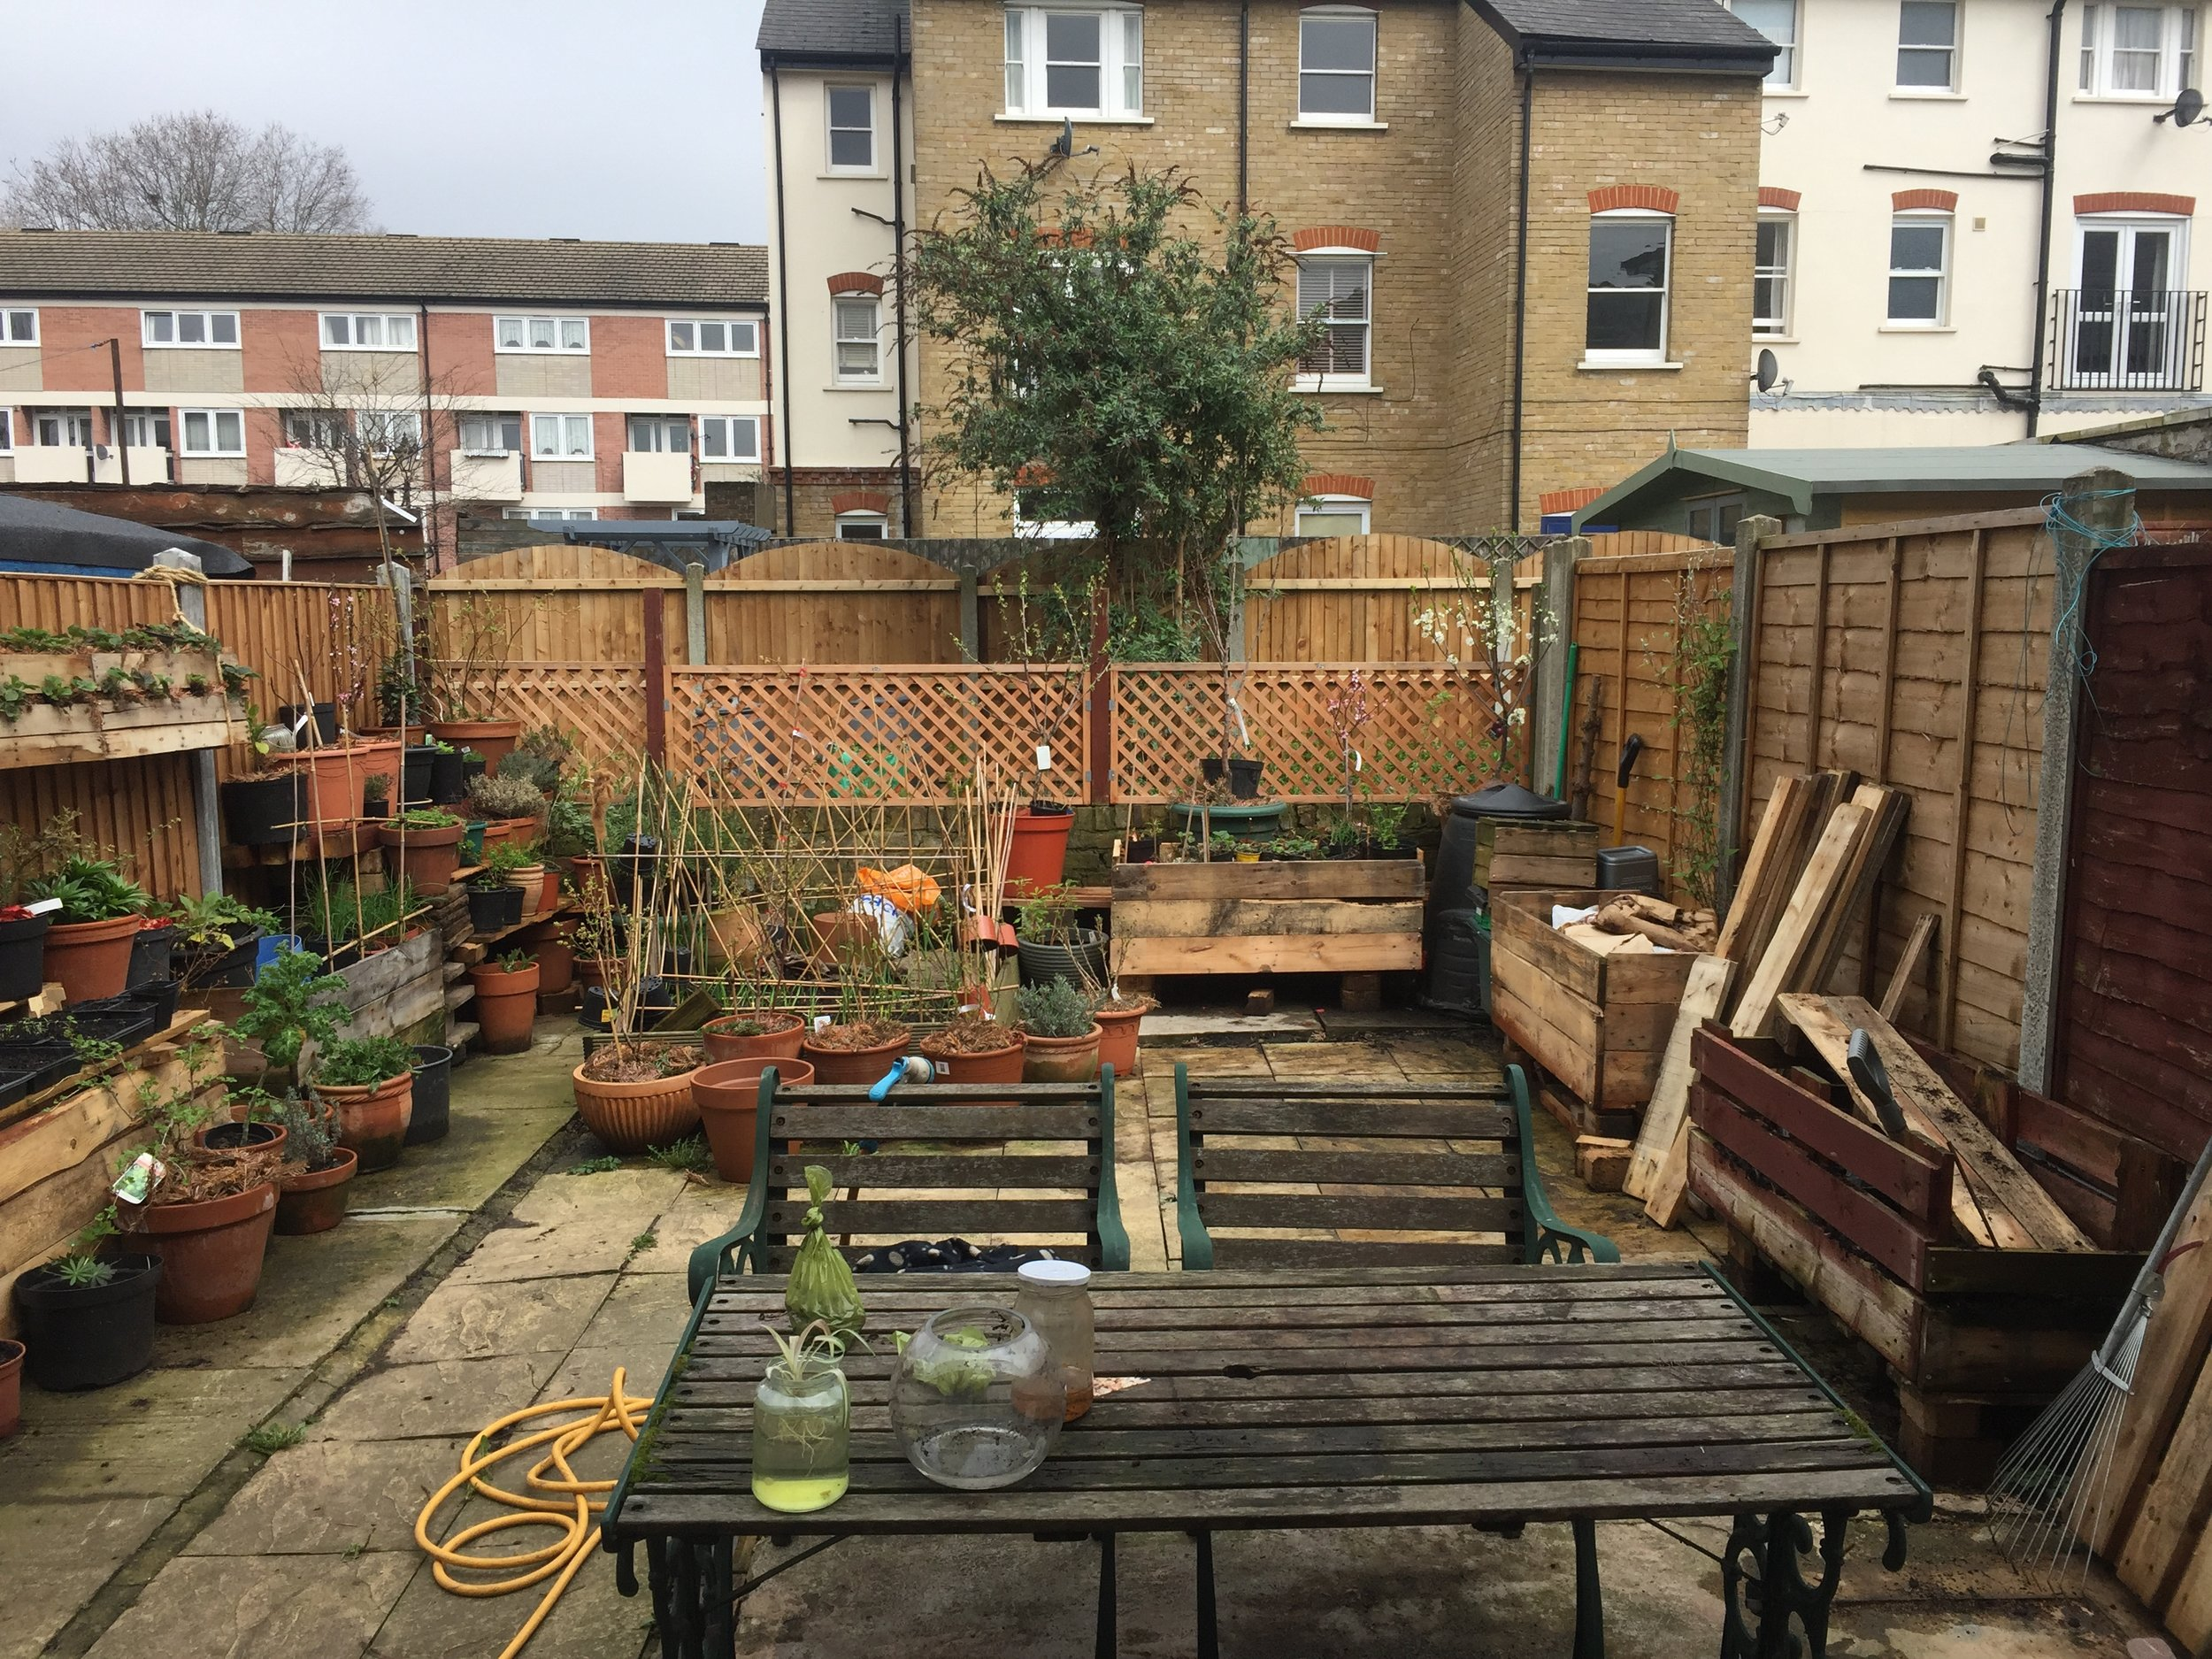 We've used up most of the wood we salvaged to build planters around the border of the garden.